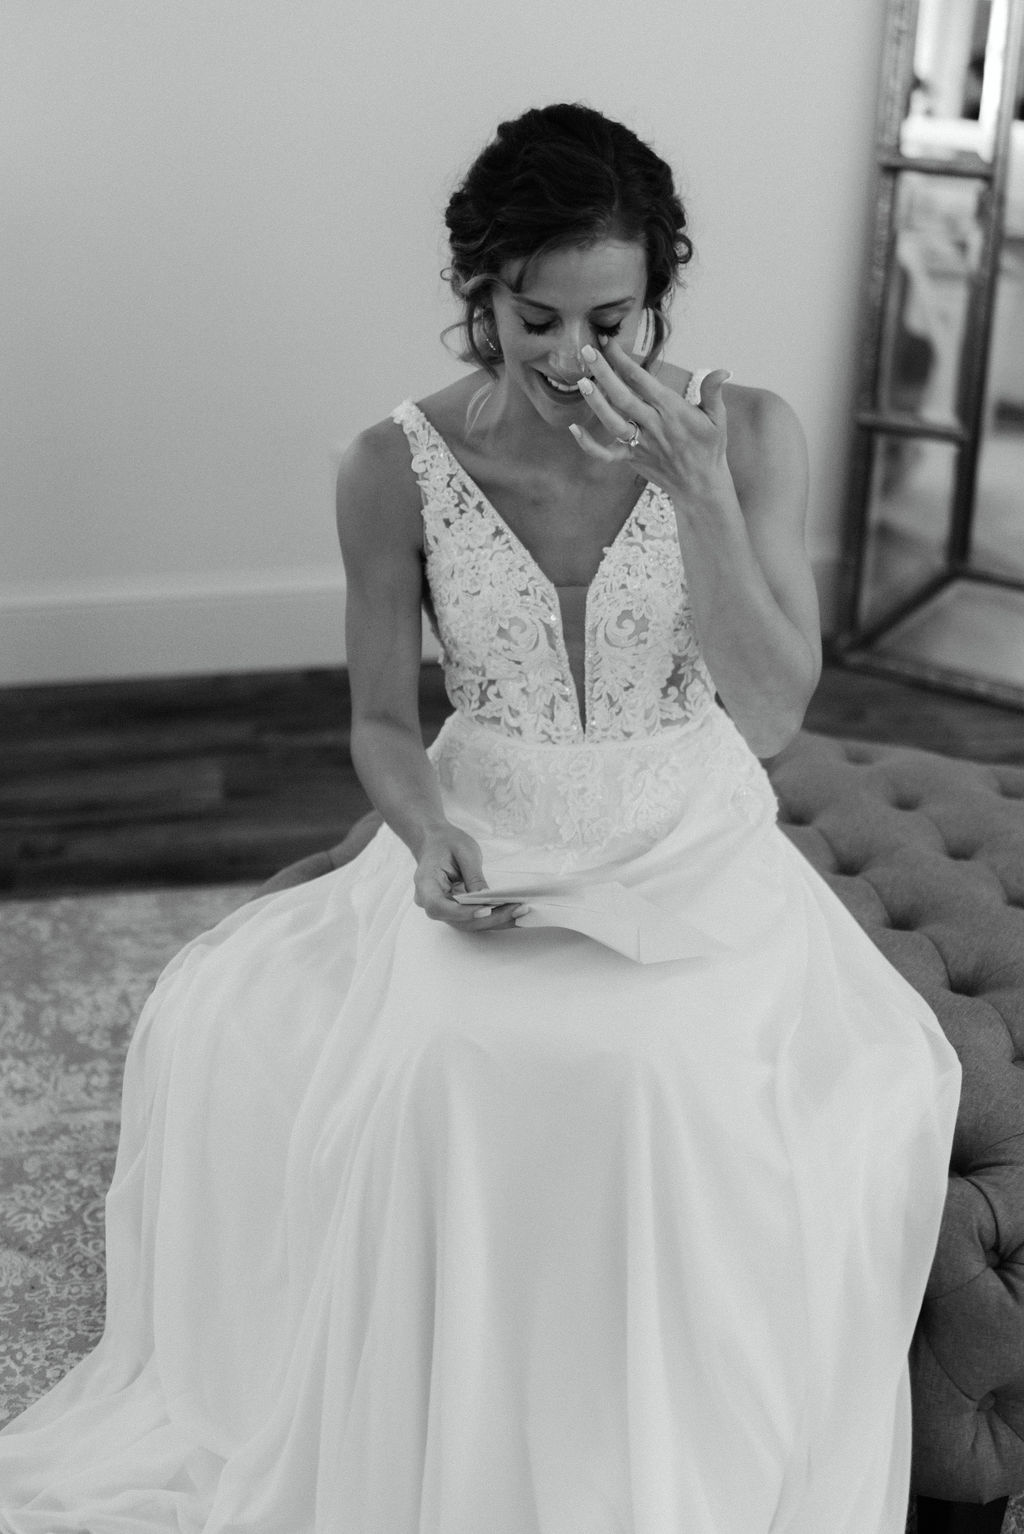 Bride cries while reading the letter her groom wrote her